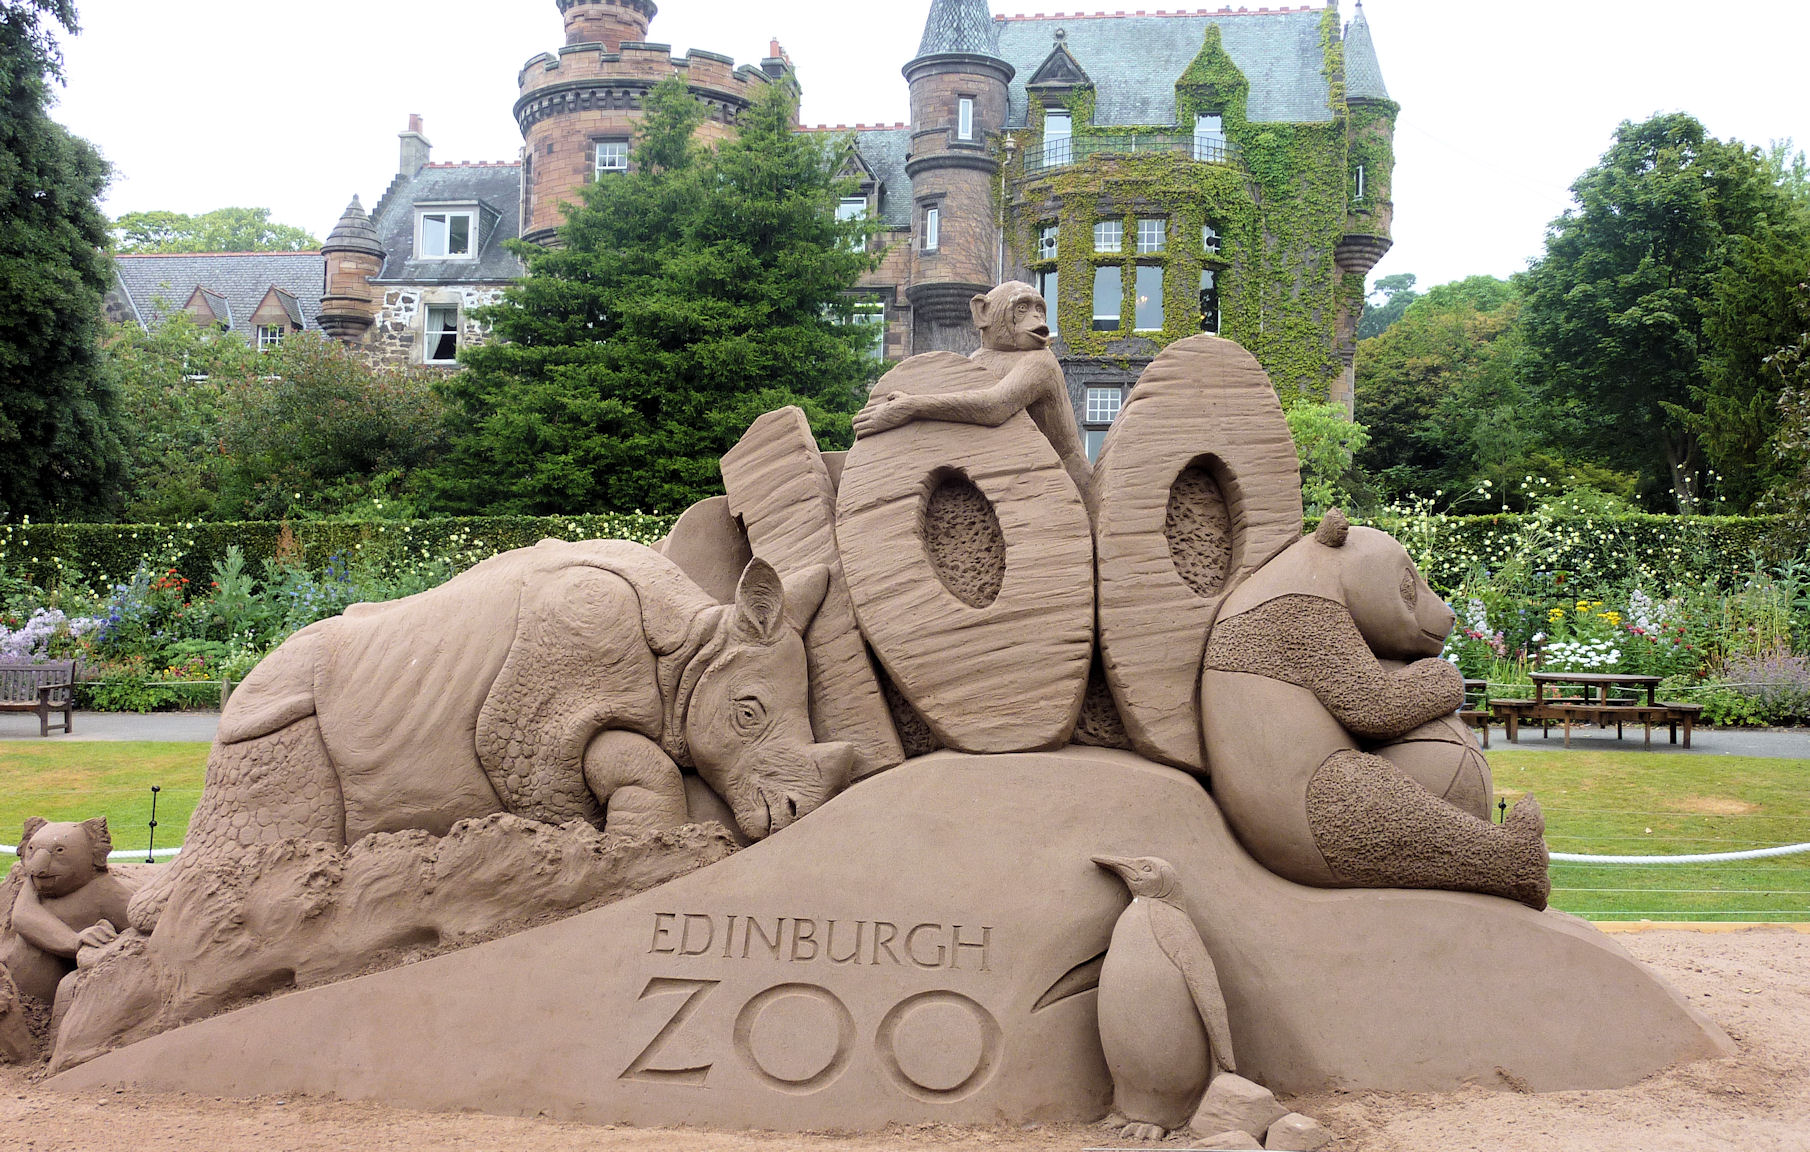 Edinburgh Zoo, Scotland